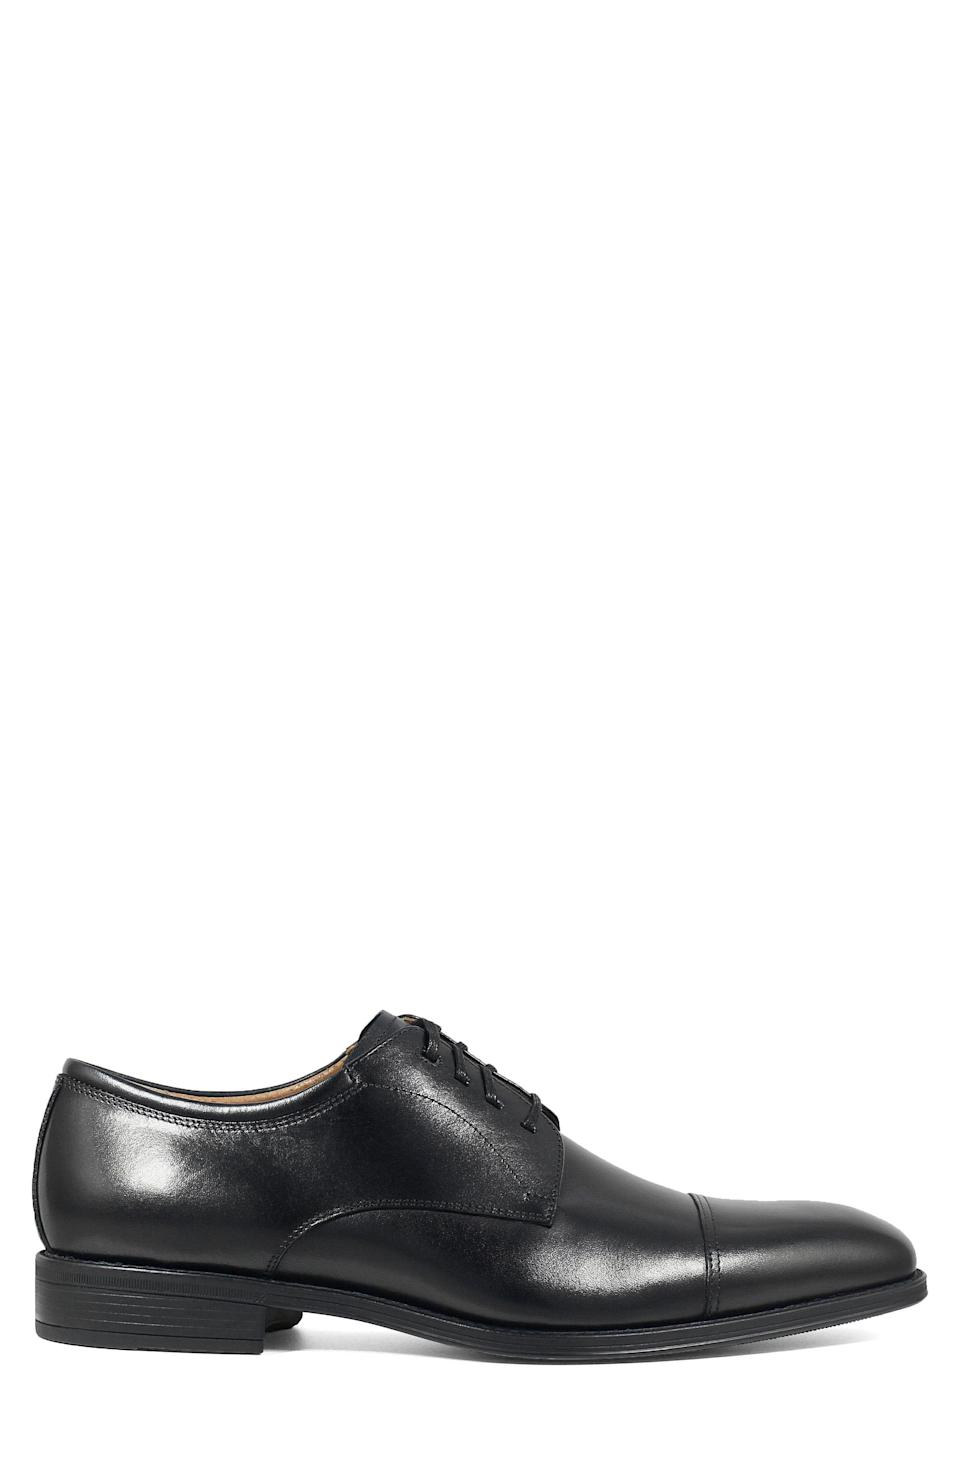 """<p><strong>FLORSHEIM</strong></p><p>nordstrom.com</p><p><strong>$99.95</strong></p><p><a href=""""https://go.redirectingat.com?id=74968X1596630&url=https%3A%2F%2Fshop.nordstrom.com%2Fs%2Fflorsheim-cardineli-cap-toe-derby-men%2F5196364&sref=https%3A%2F%2Fwww.menshealth.com%2Fstyle%2Fg19545927%2Fbest-dress-shoes%2F"""" rel=""""nofollow noopener"""" target=""""_blank"""" data-ylk=""""slk:BUY IT HERE"""" class=""""link rapid-noclick-resp"""">BUY IT HERE</a></p><p>The best assortment of dress shoes for anyone's closet includes a pair that you never have to think twice about. These cap-toe derbies are always appropriate. </p>"""